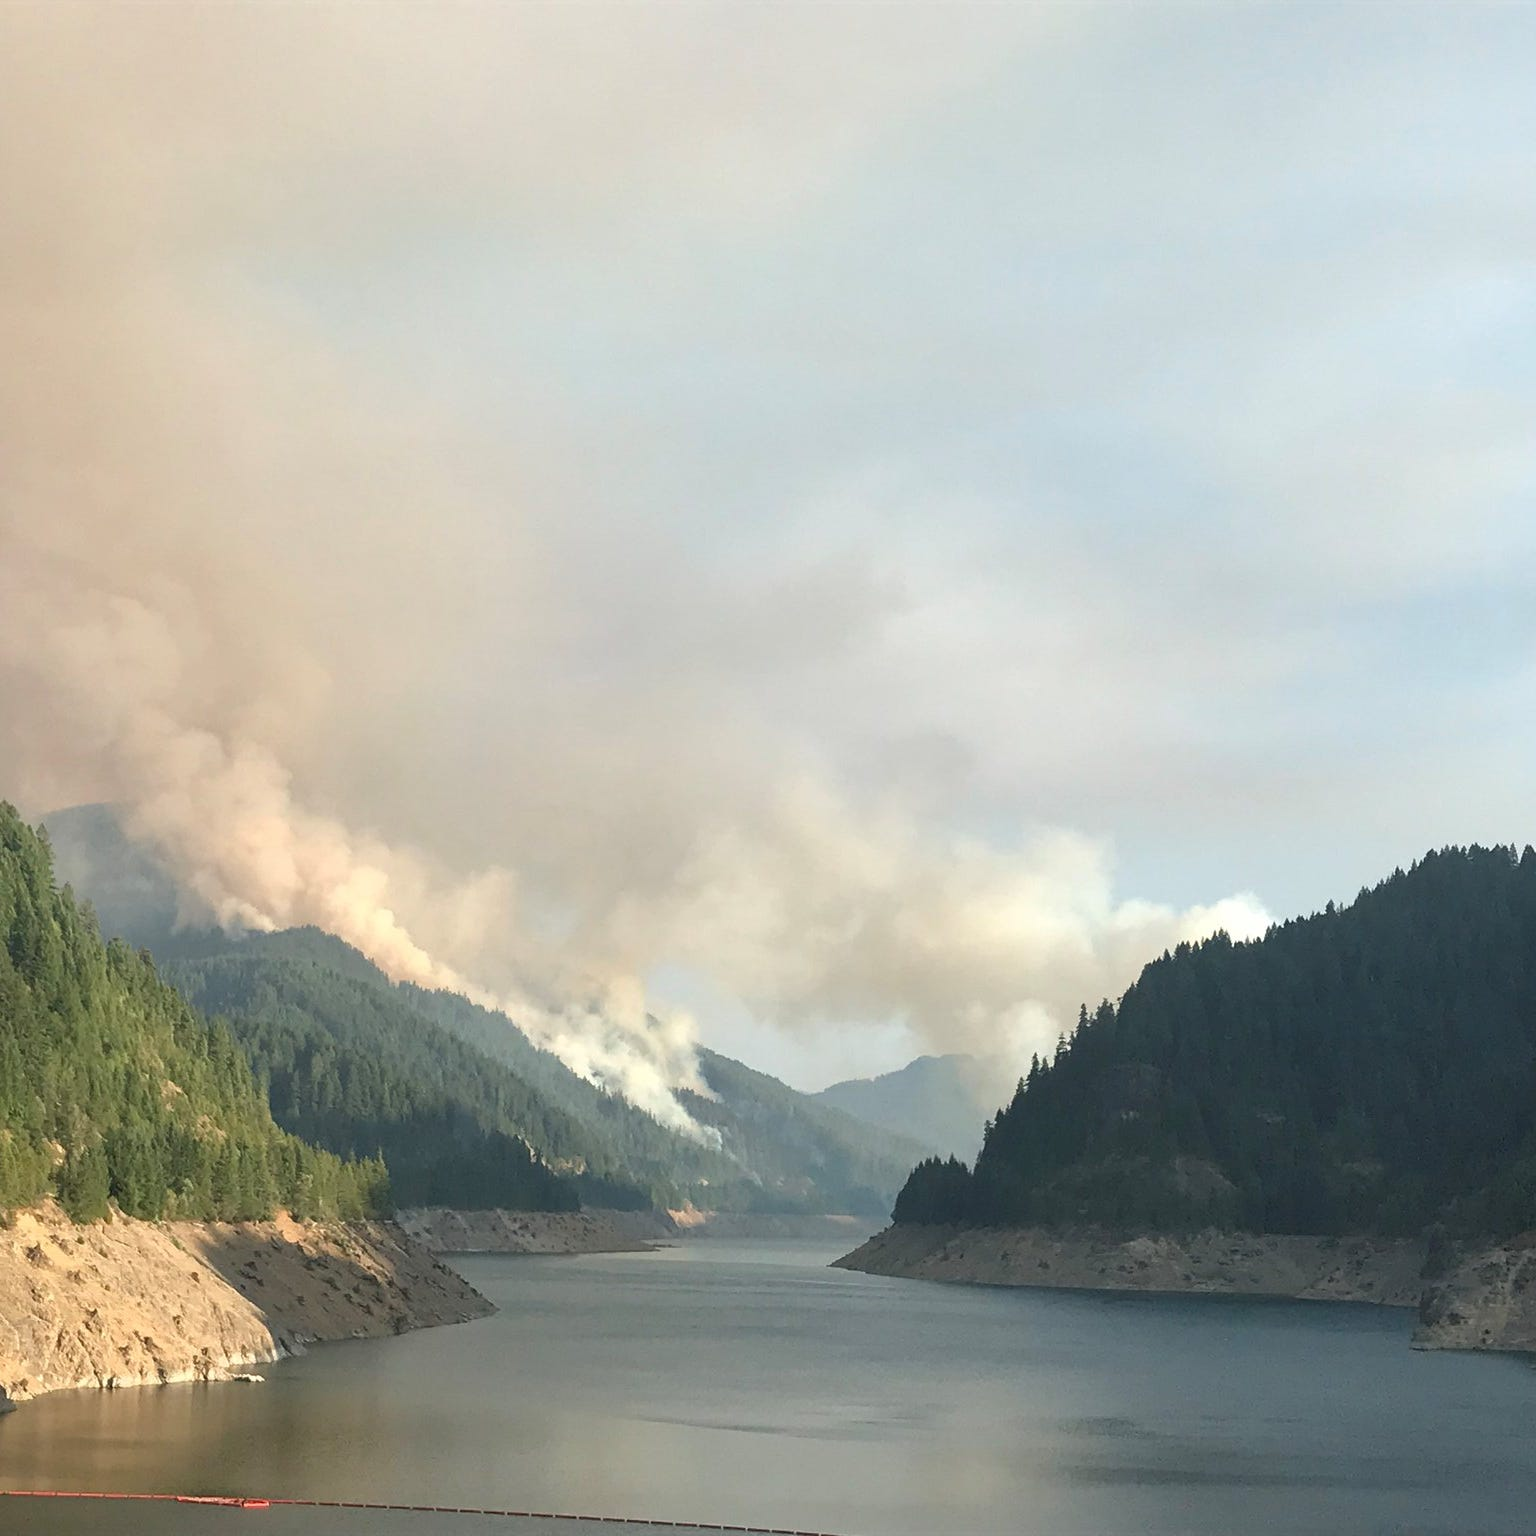 Fast-growing wildfire near Terwilliger Hot Springs now 110 acres, visitors asked to avoid area